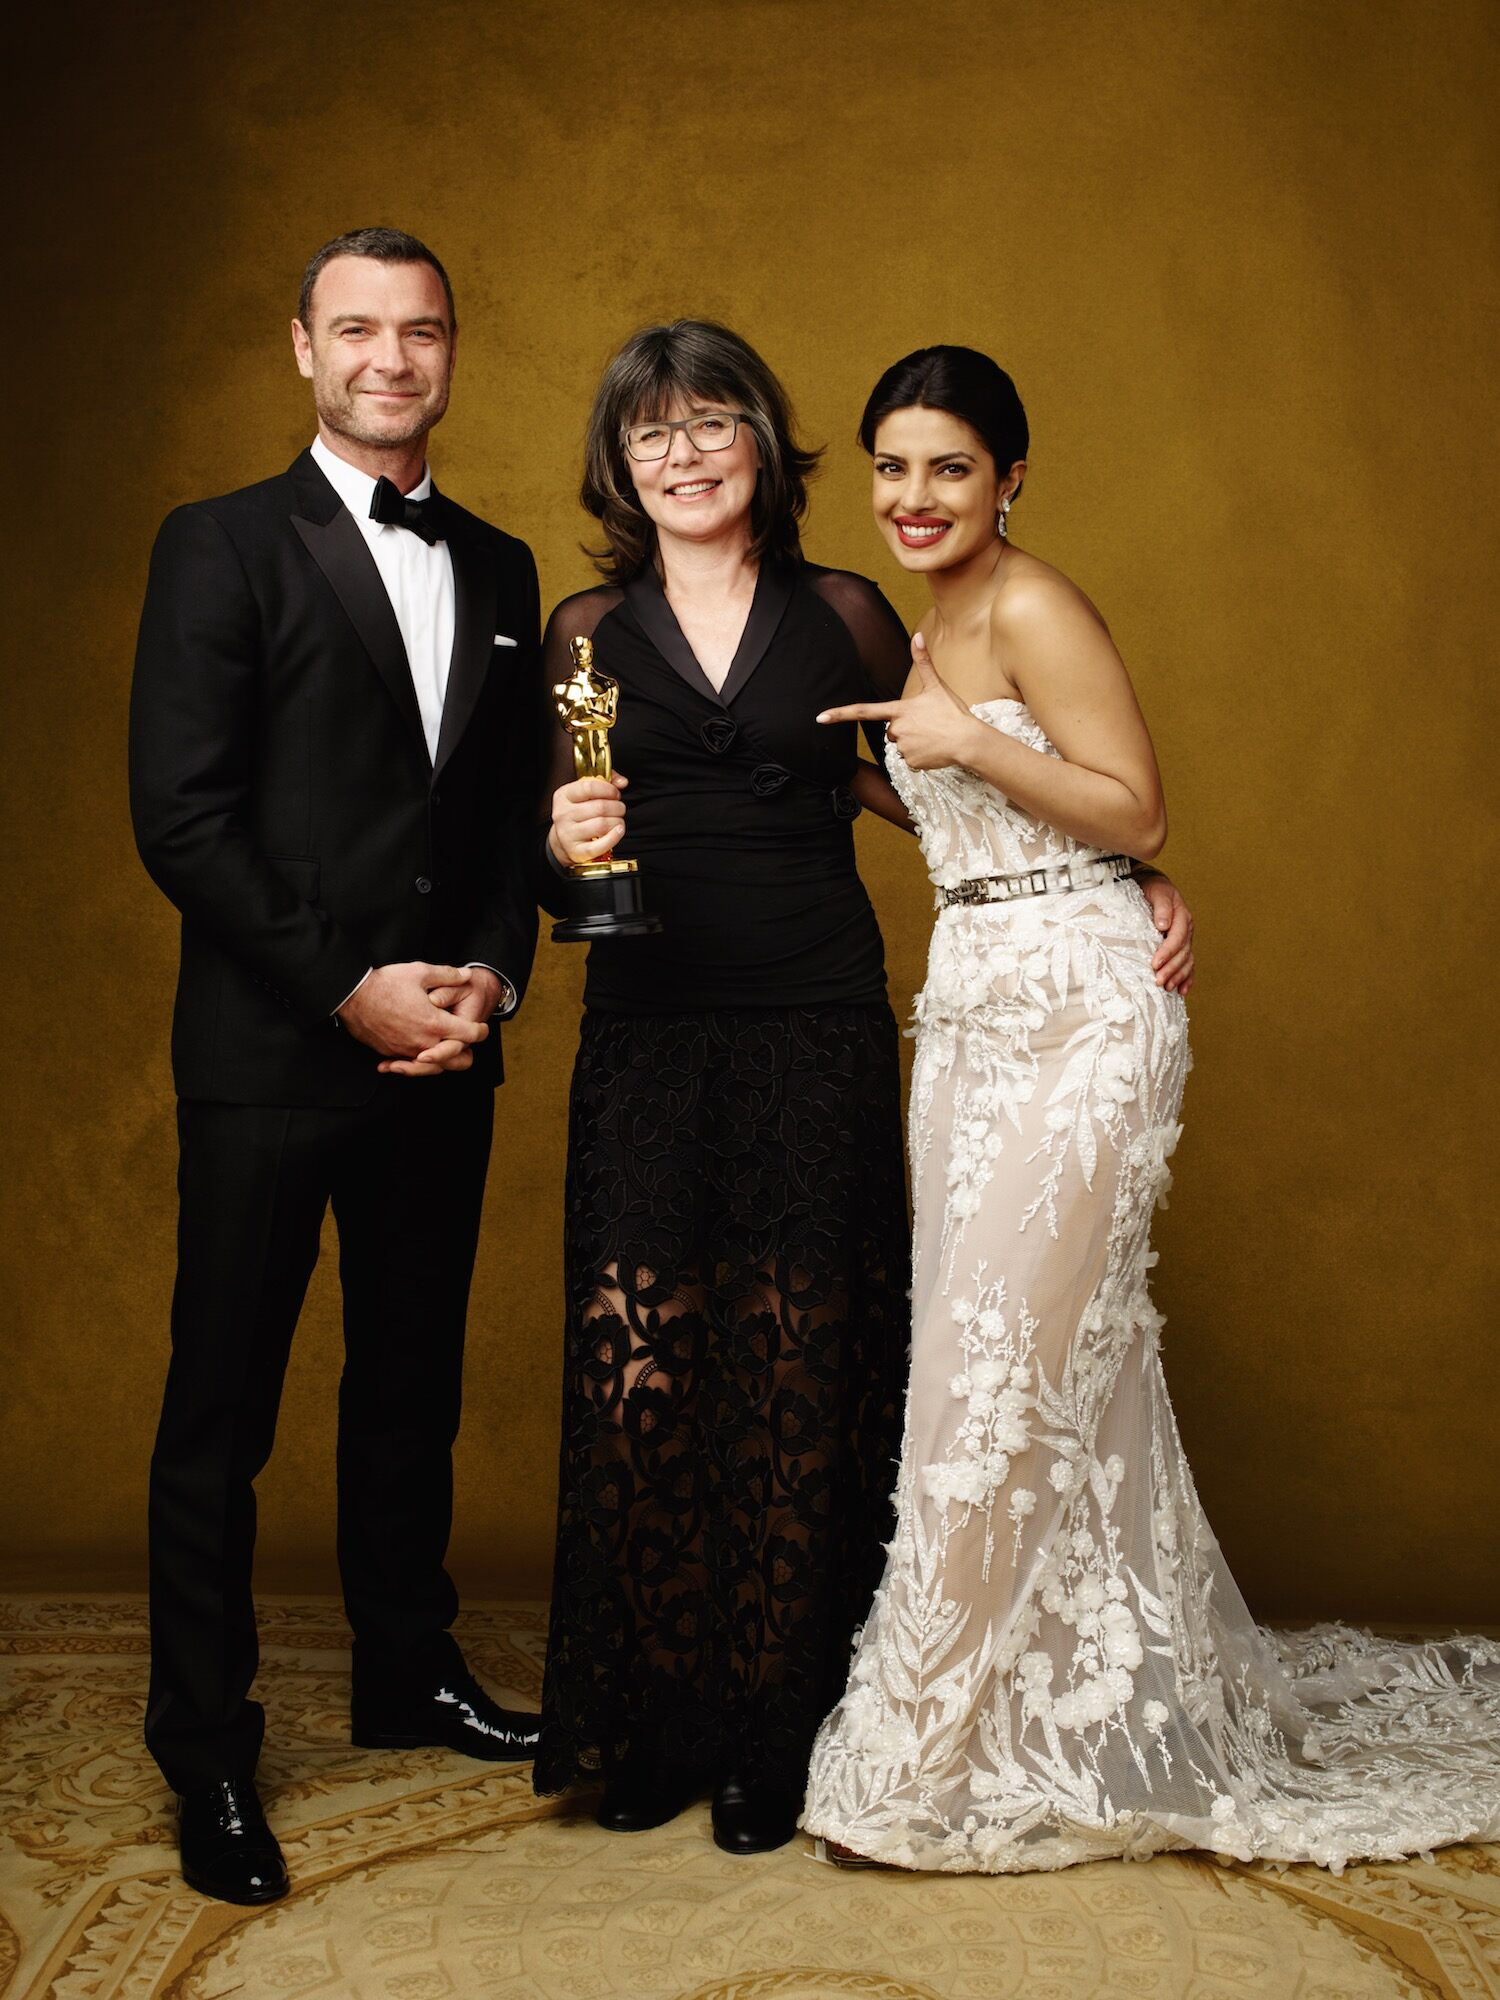 Film Editing, with presenters Liev Schreiber and Priyanka Chopra